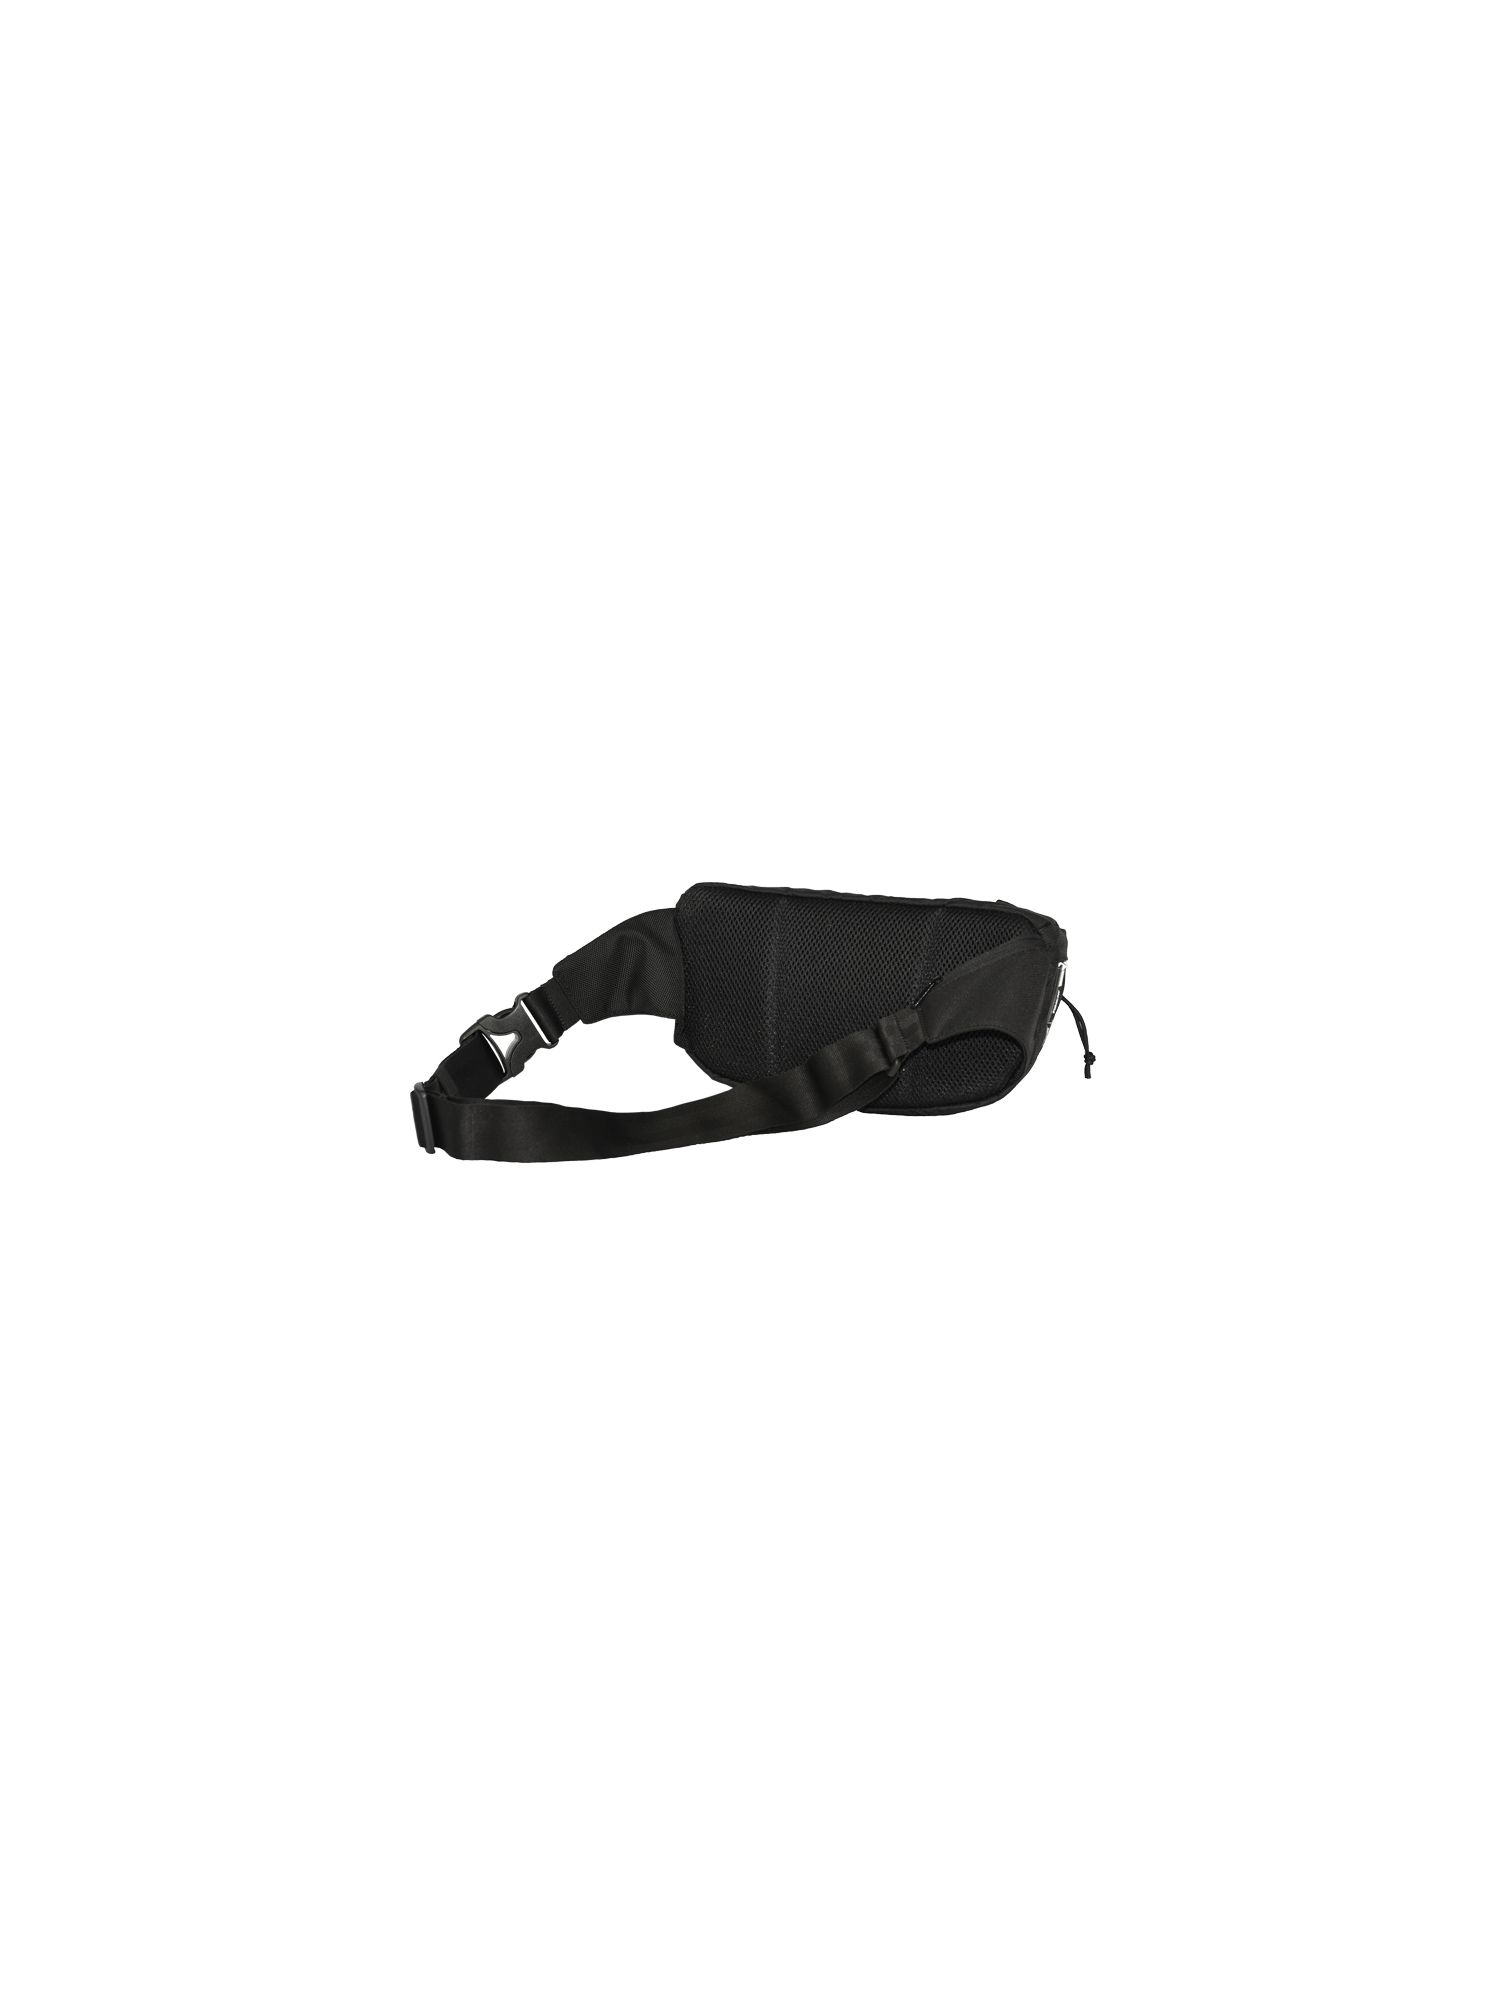 NEB006 | EXPLORER WAIST BAG[1color]